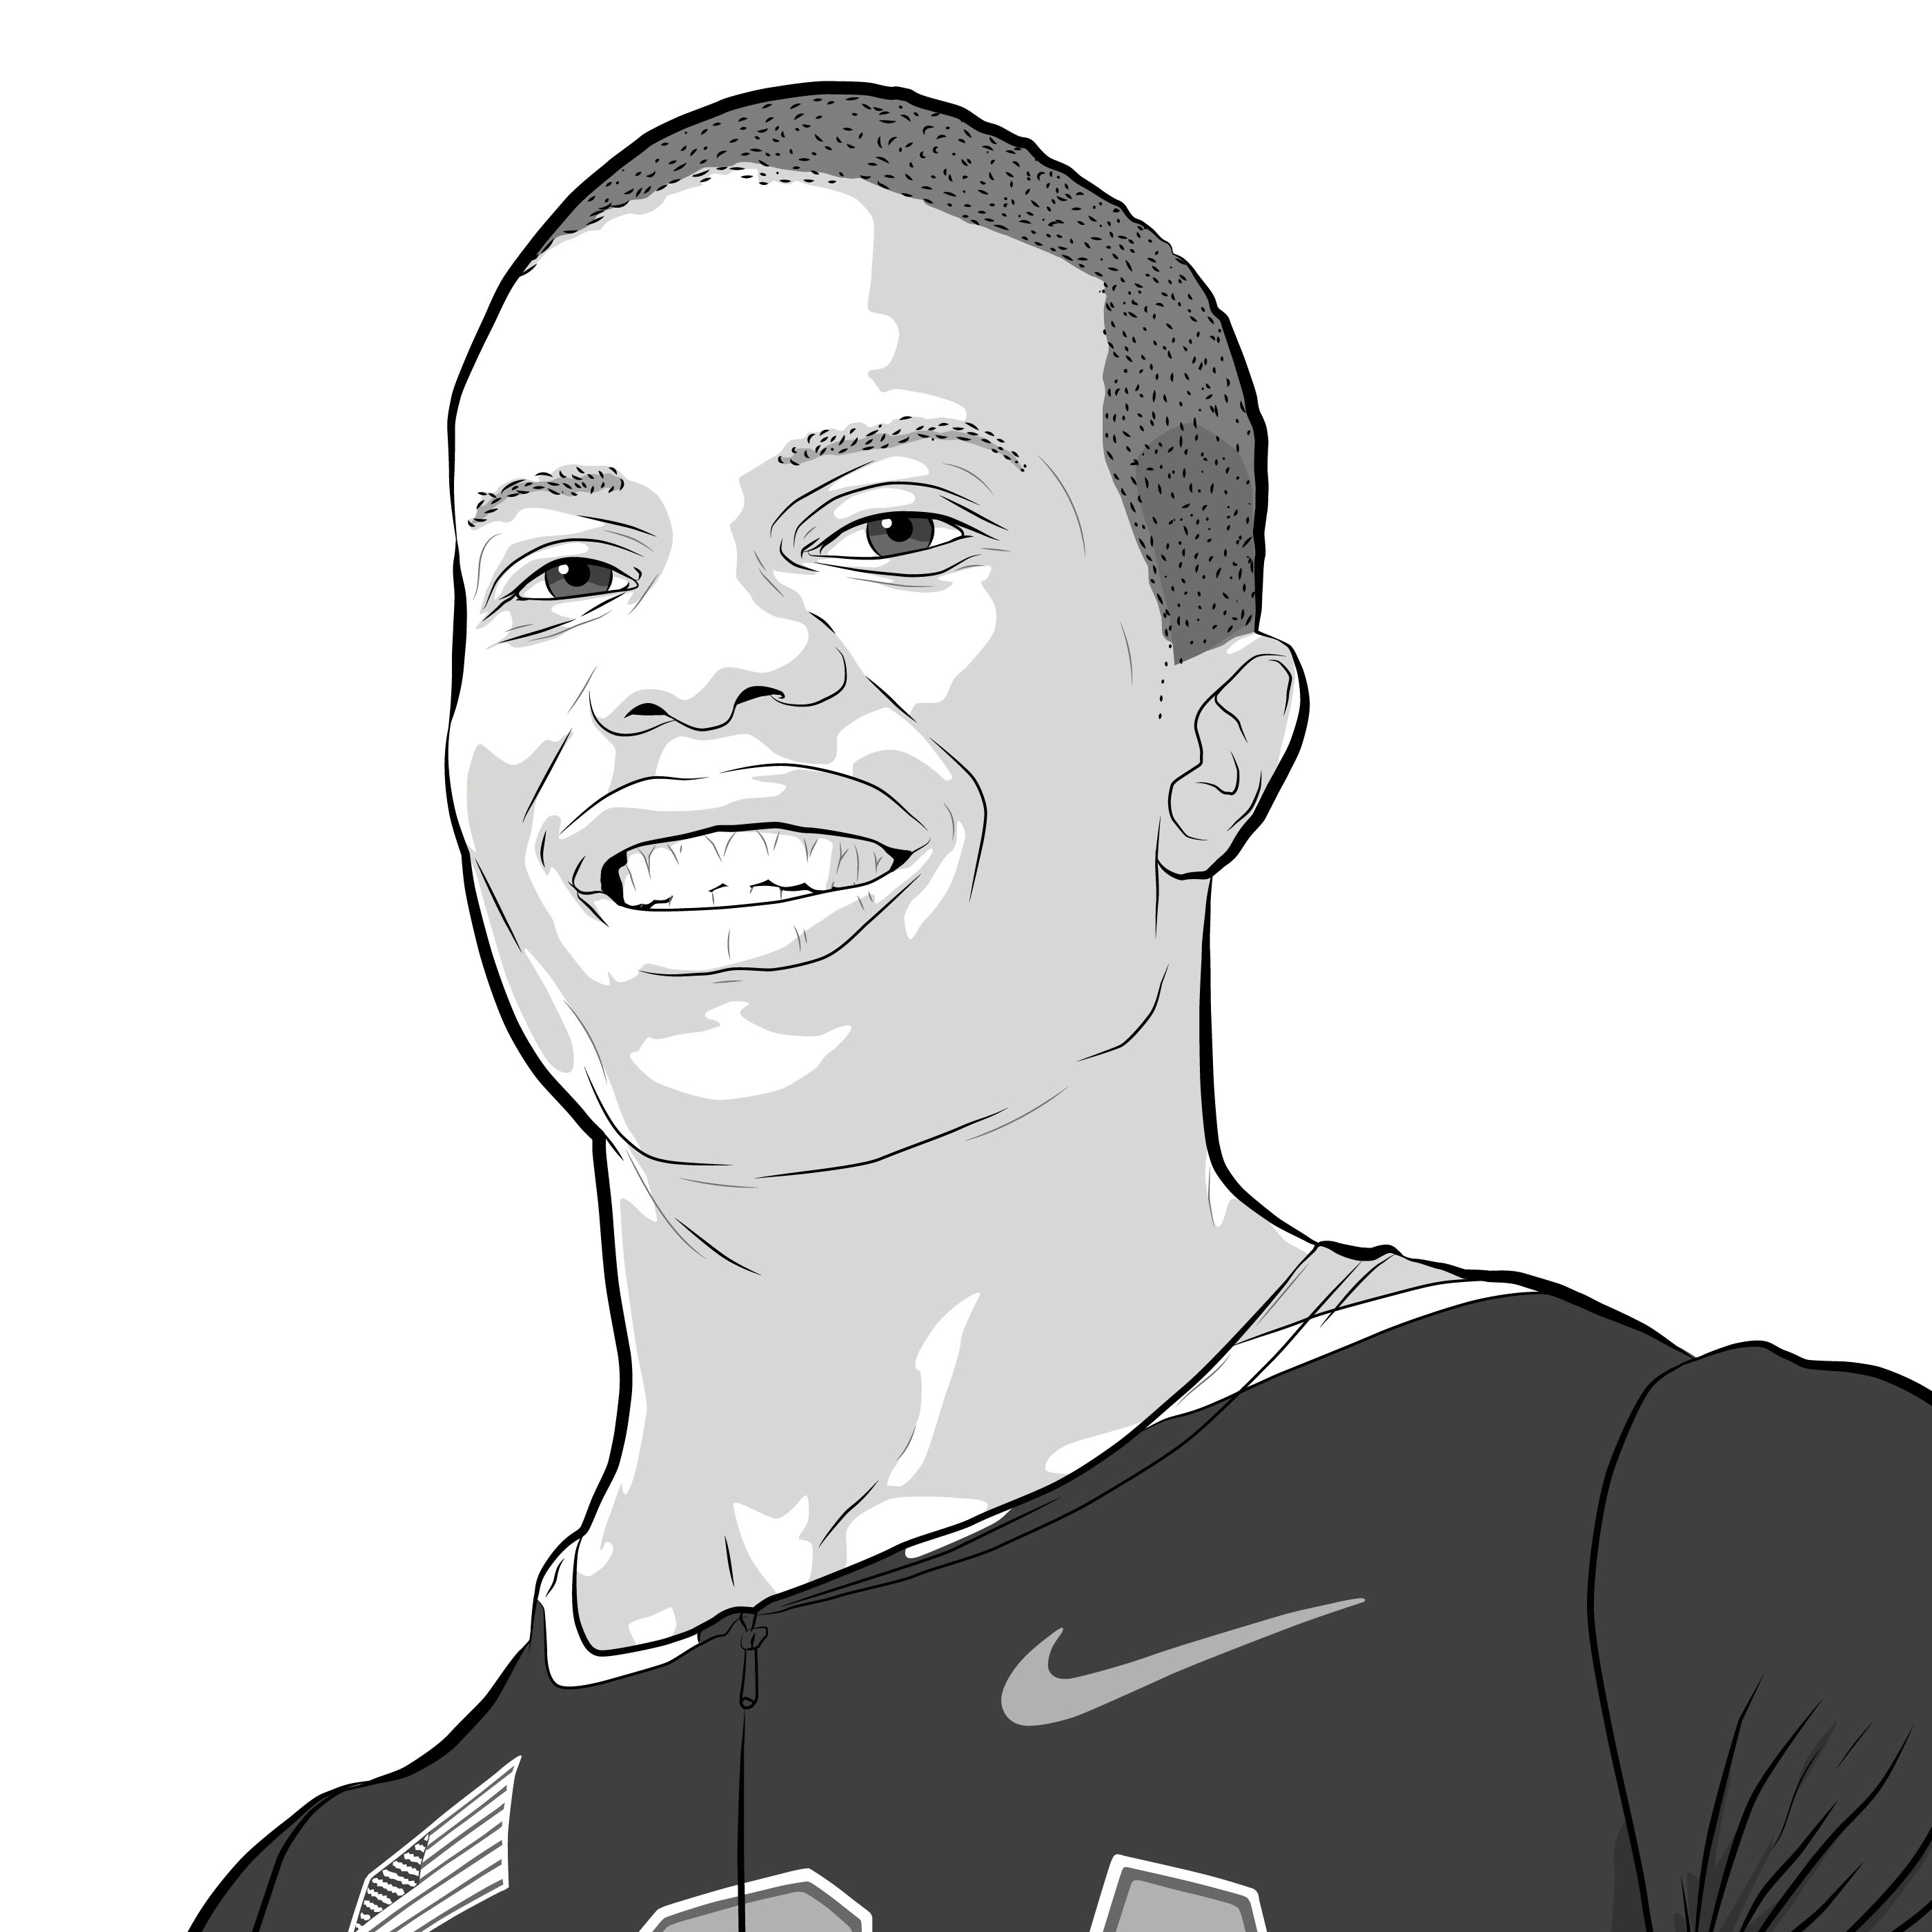 Athlete Portrait of Jerome Singleton Jr, Illustration by Max Hancock